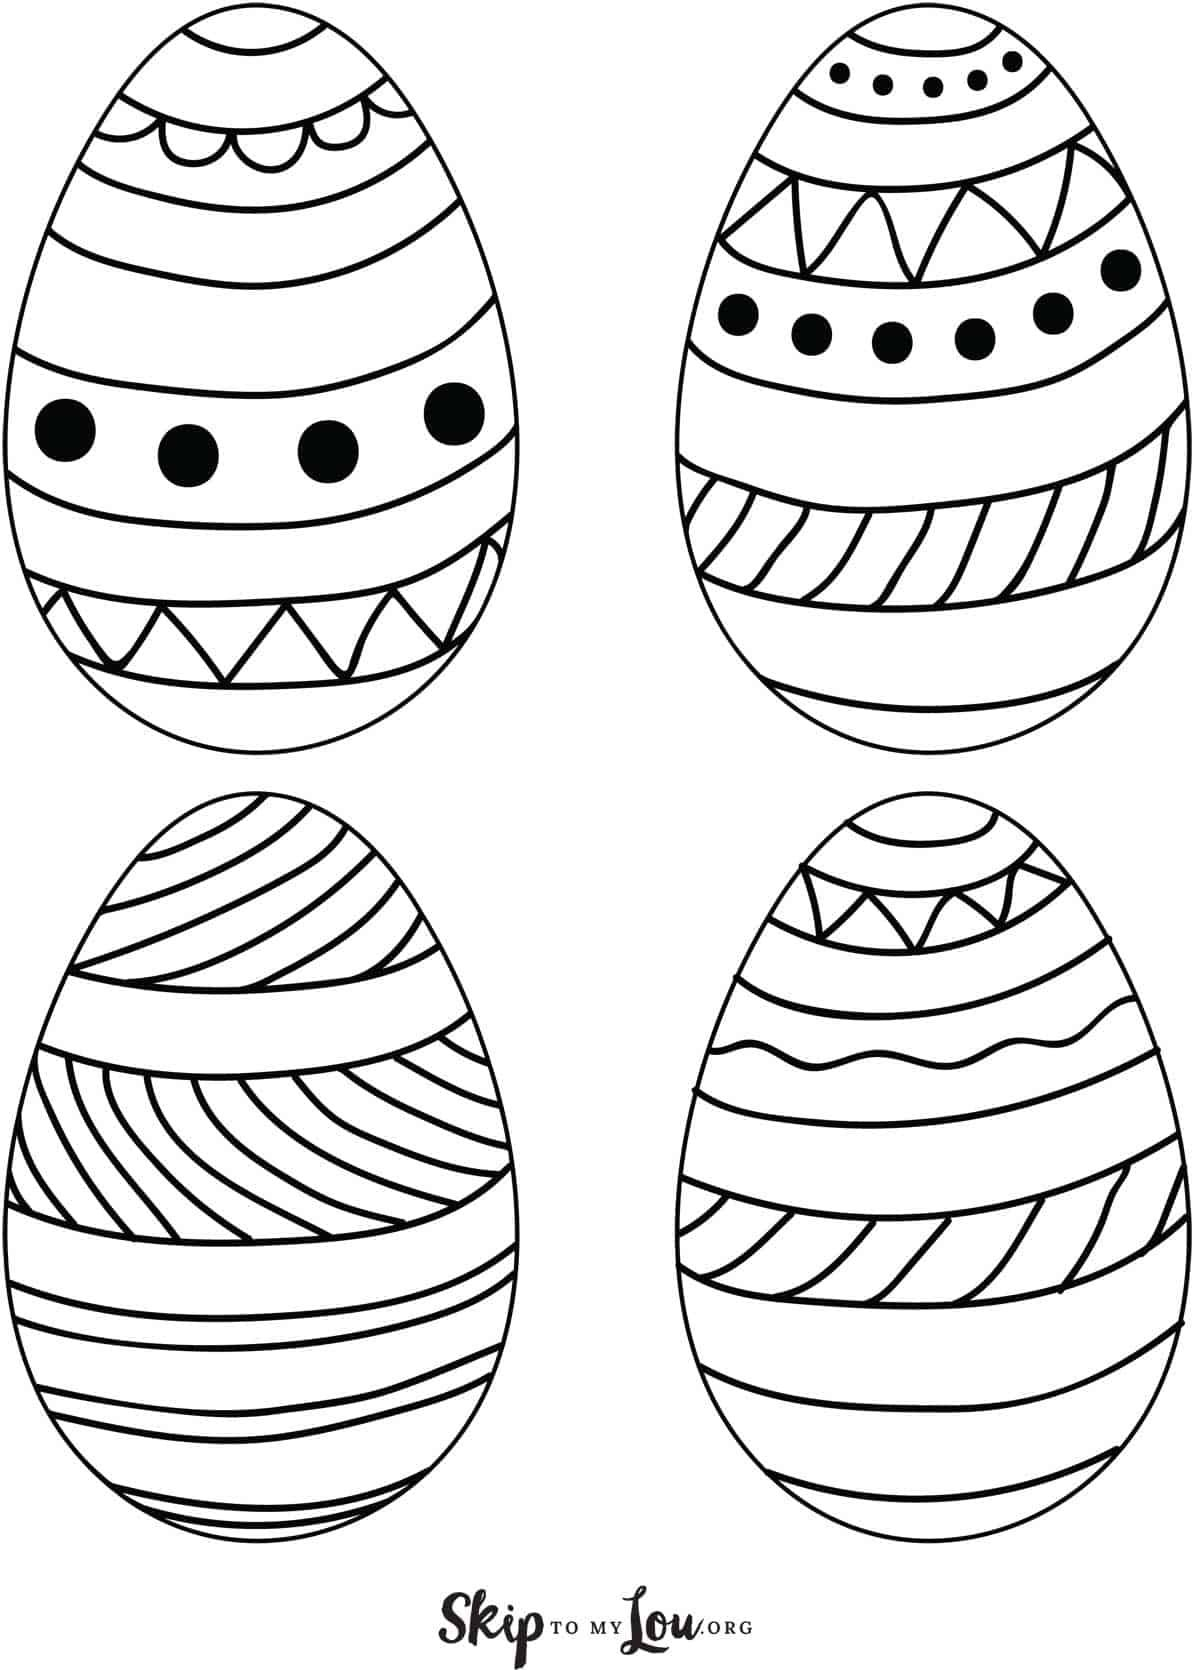 Printable Easter Eggs 4 On Page In